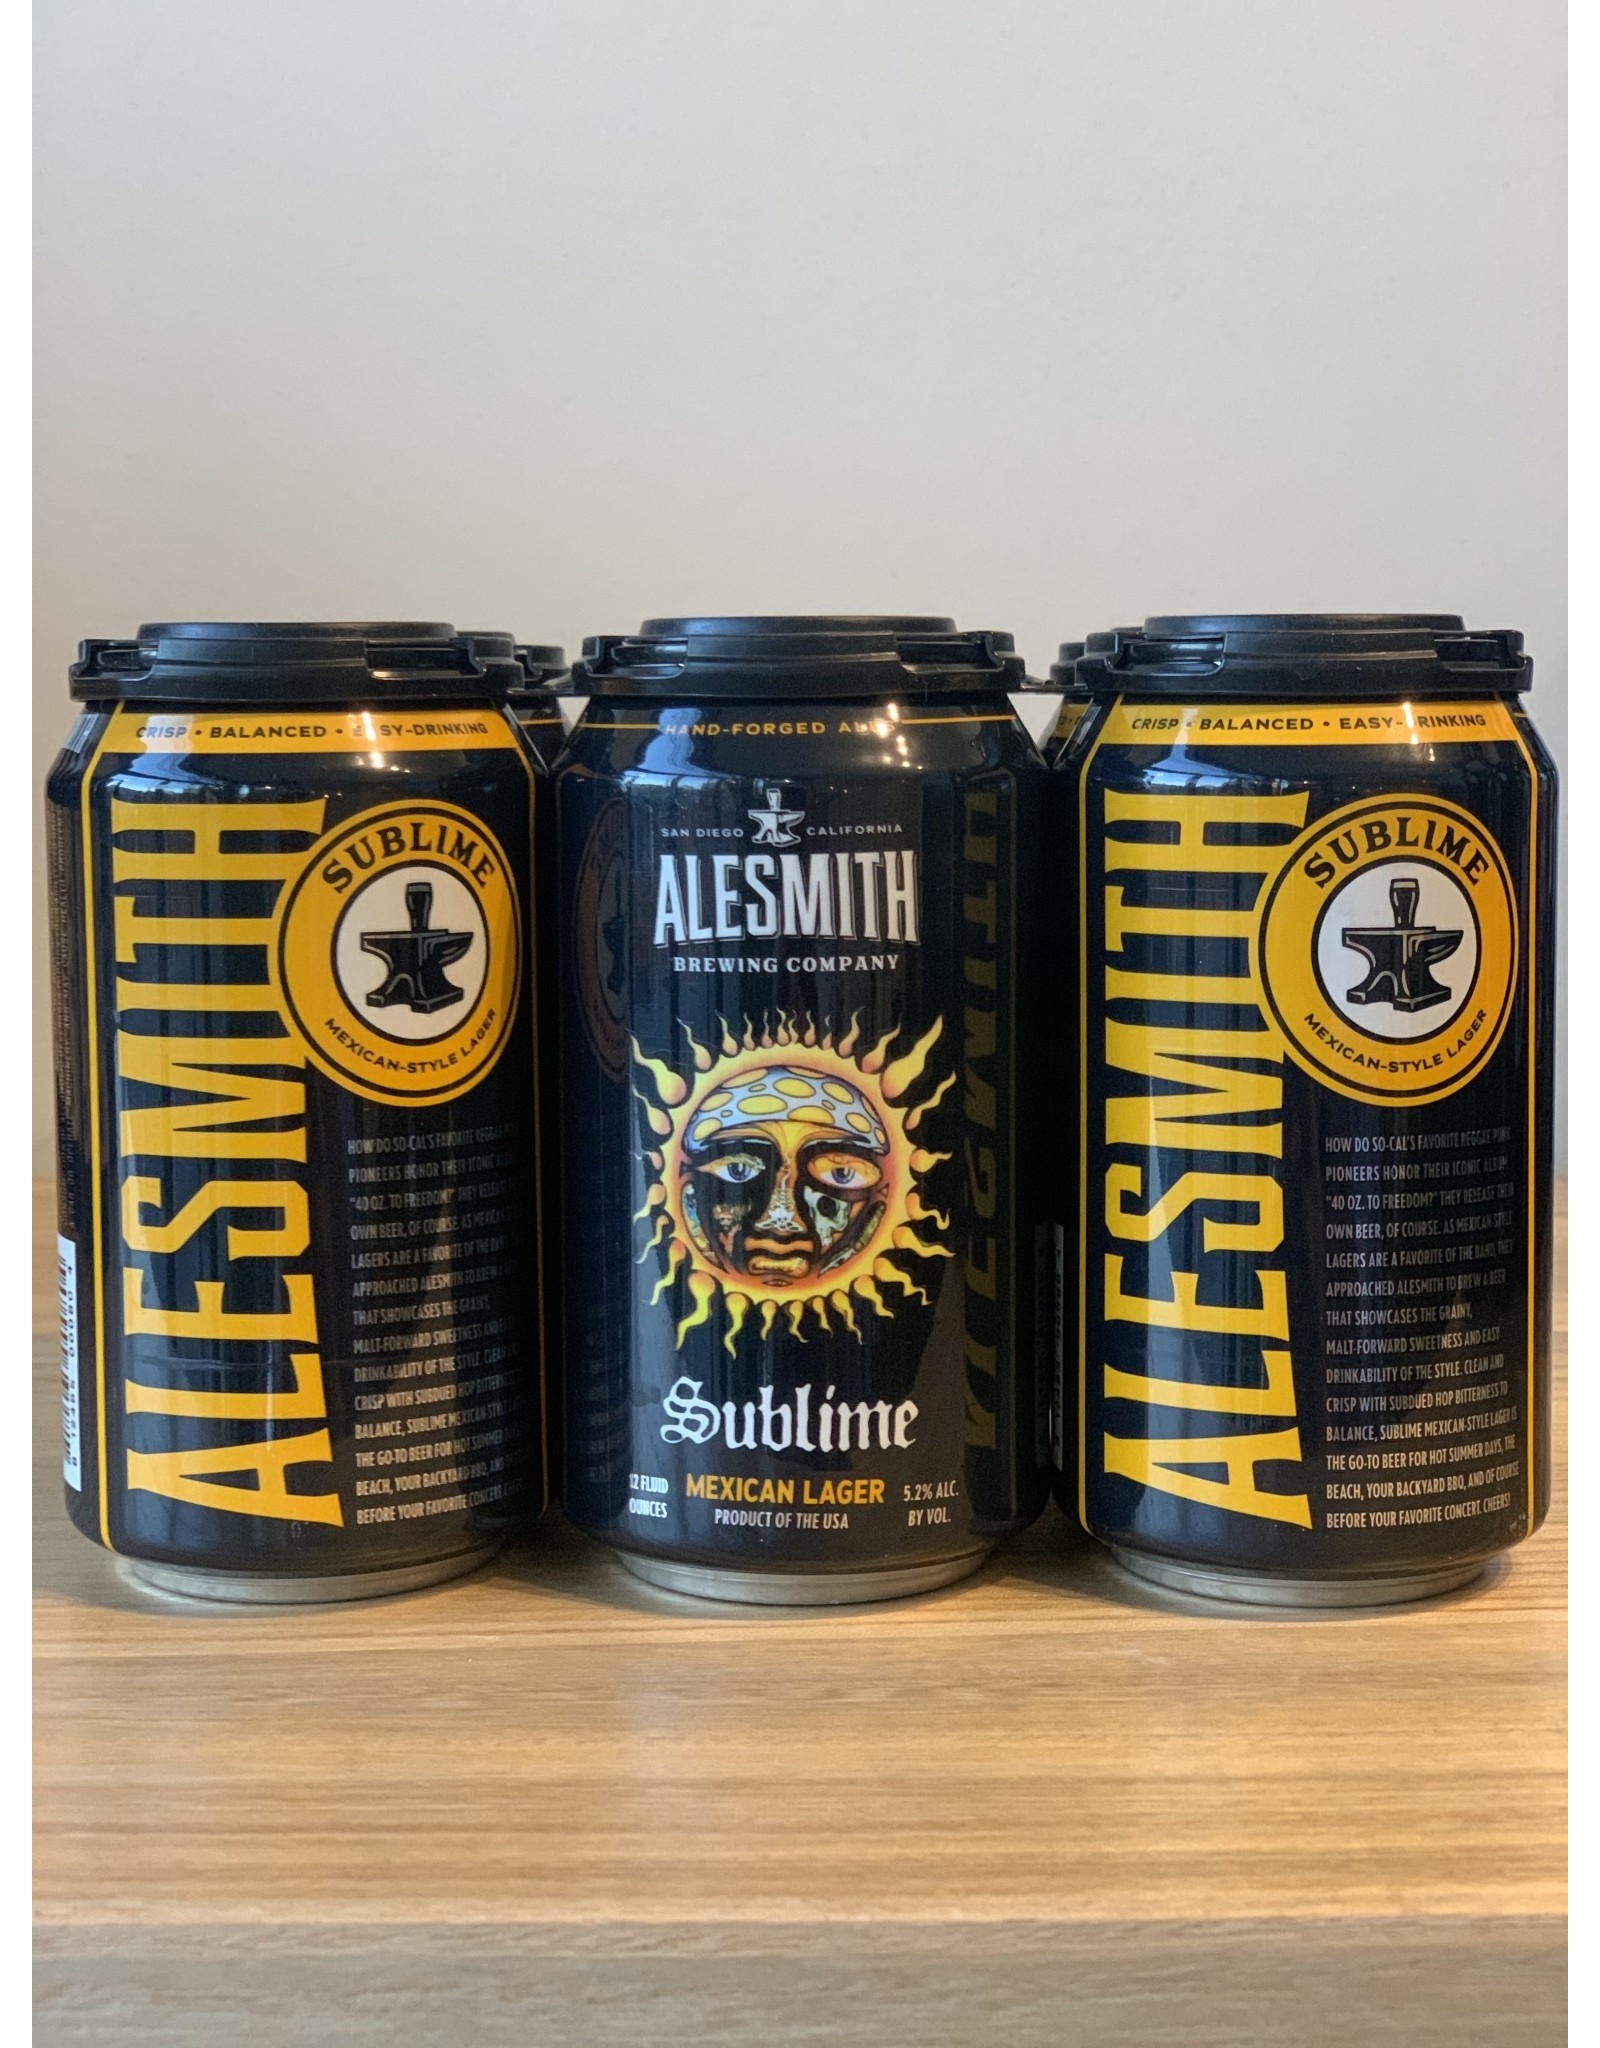 Alesmith Alesmith Sublime Mexican-Style Lager